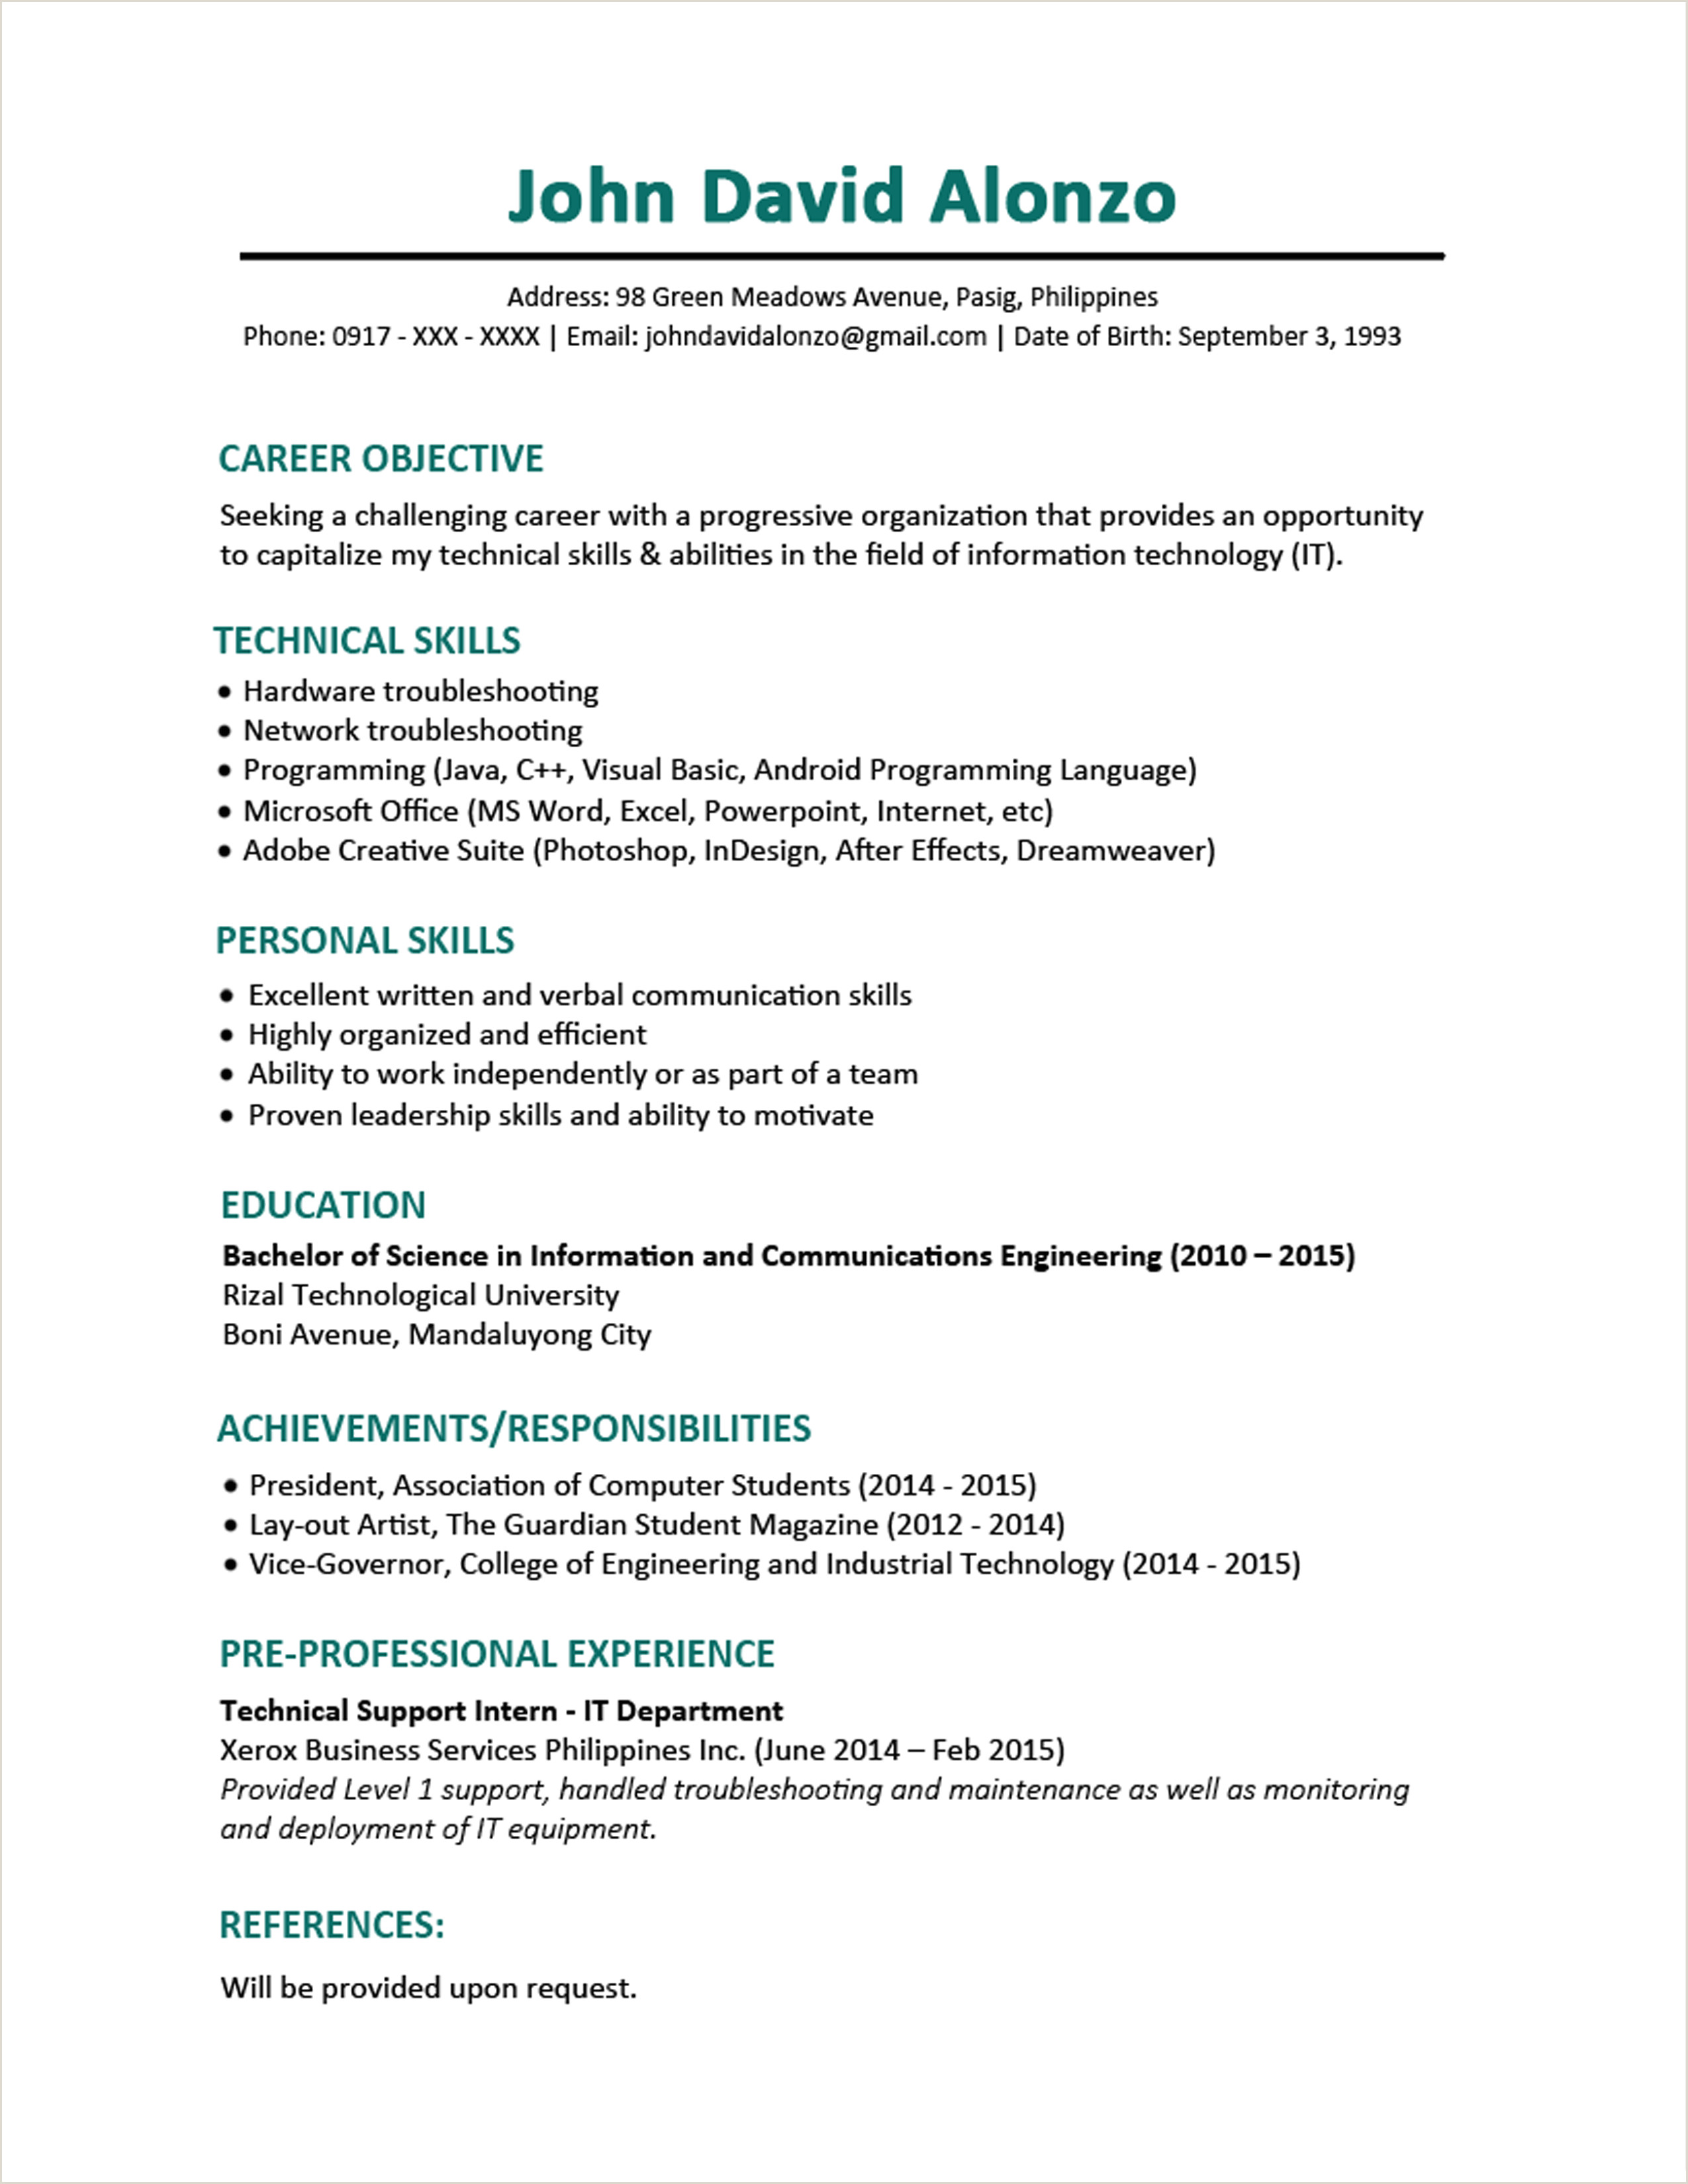 Fresher Resume Format Free Download In Ms Word 3 Page Resume Format For Freshers Resume Templates